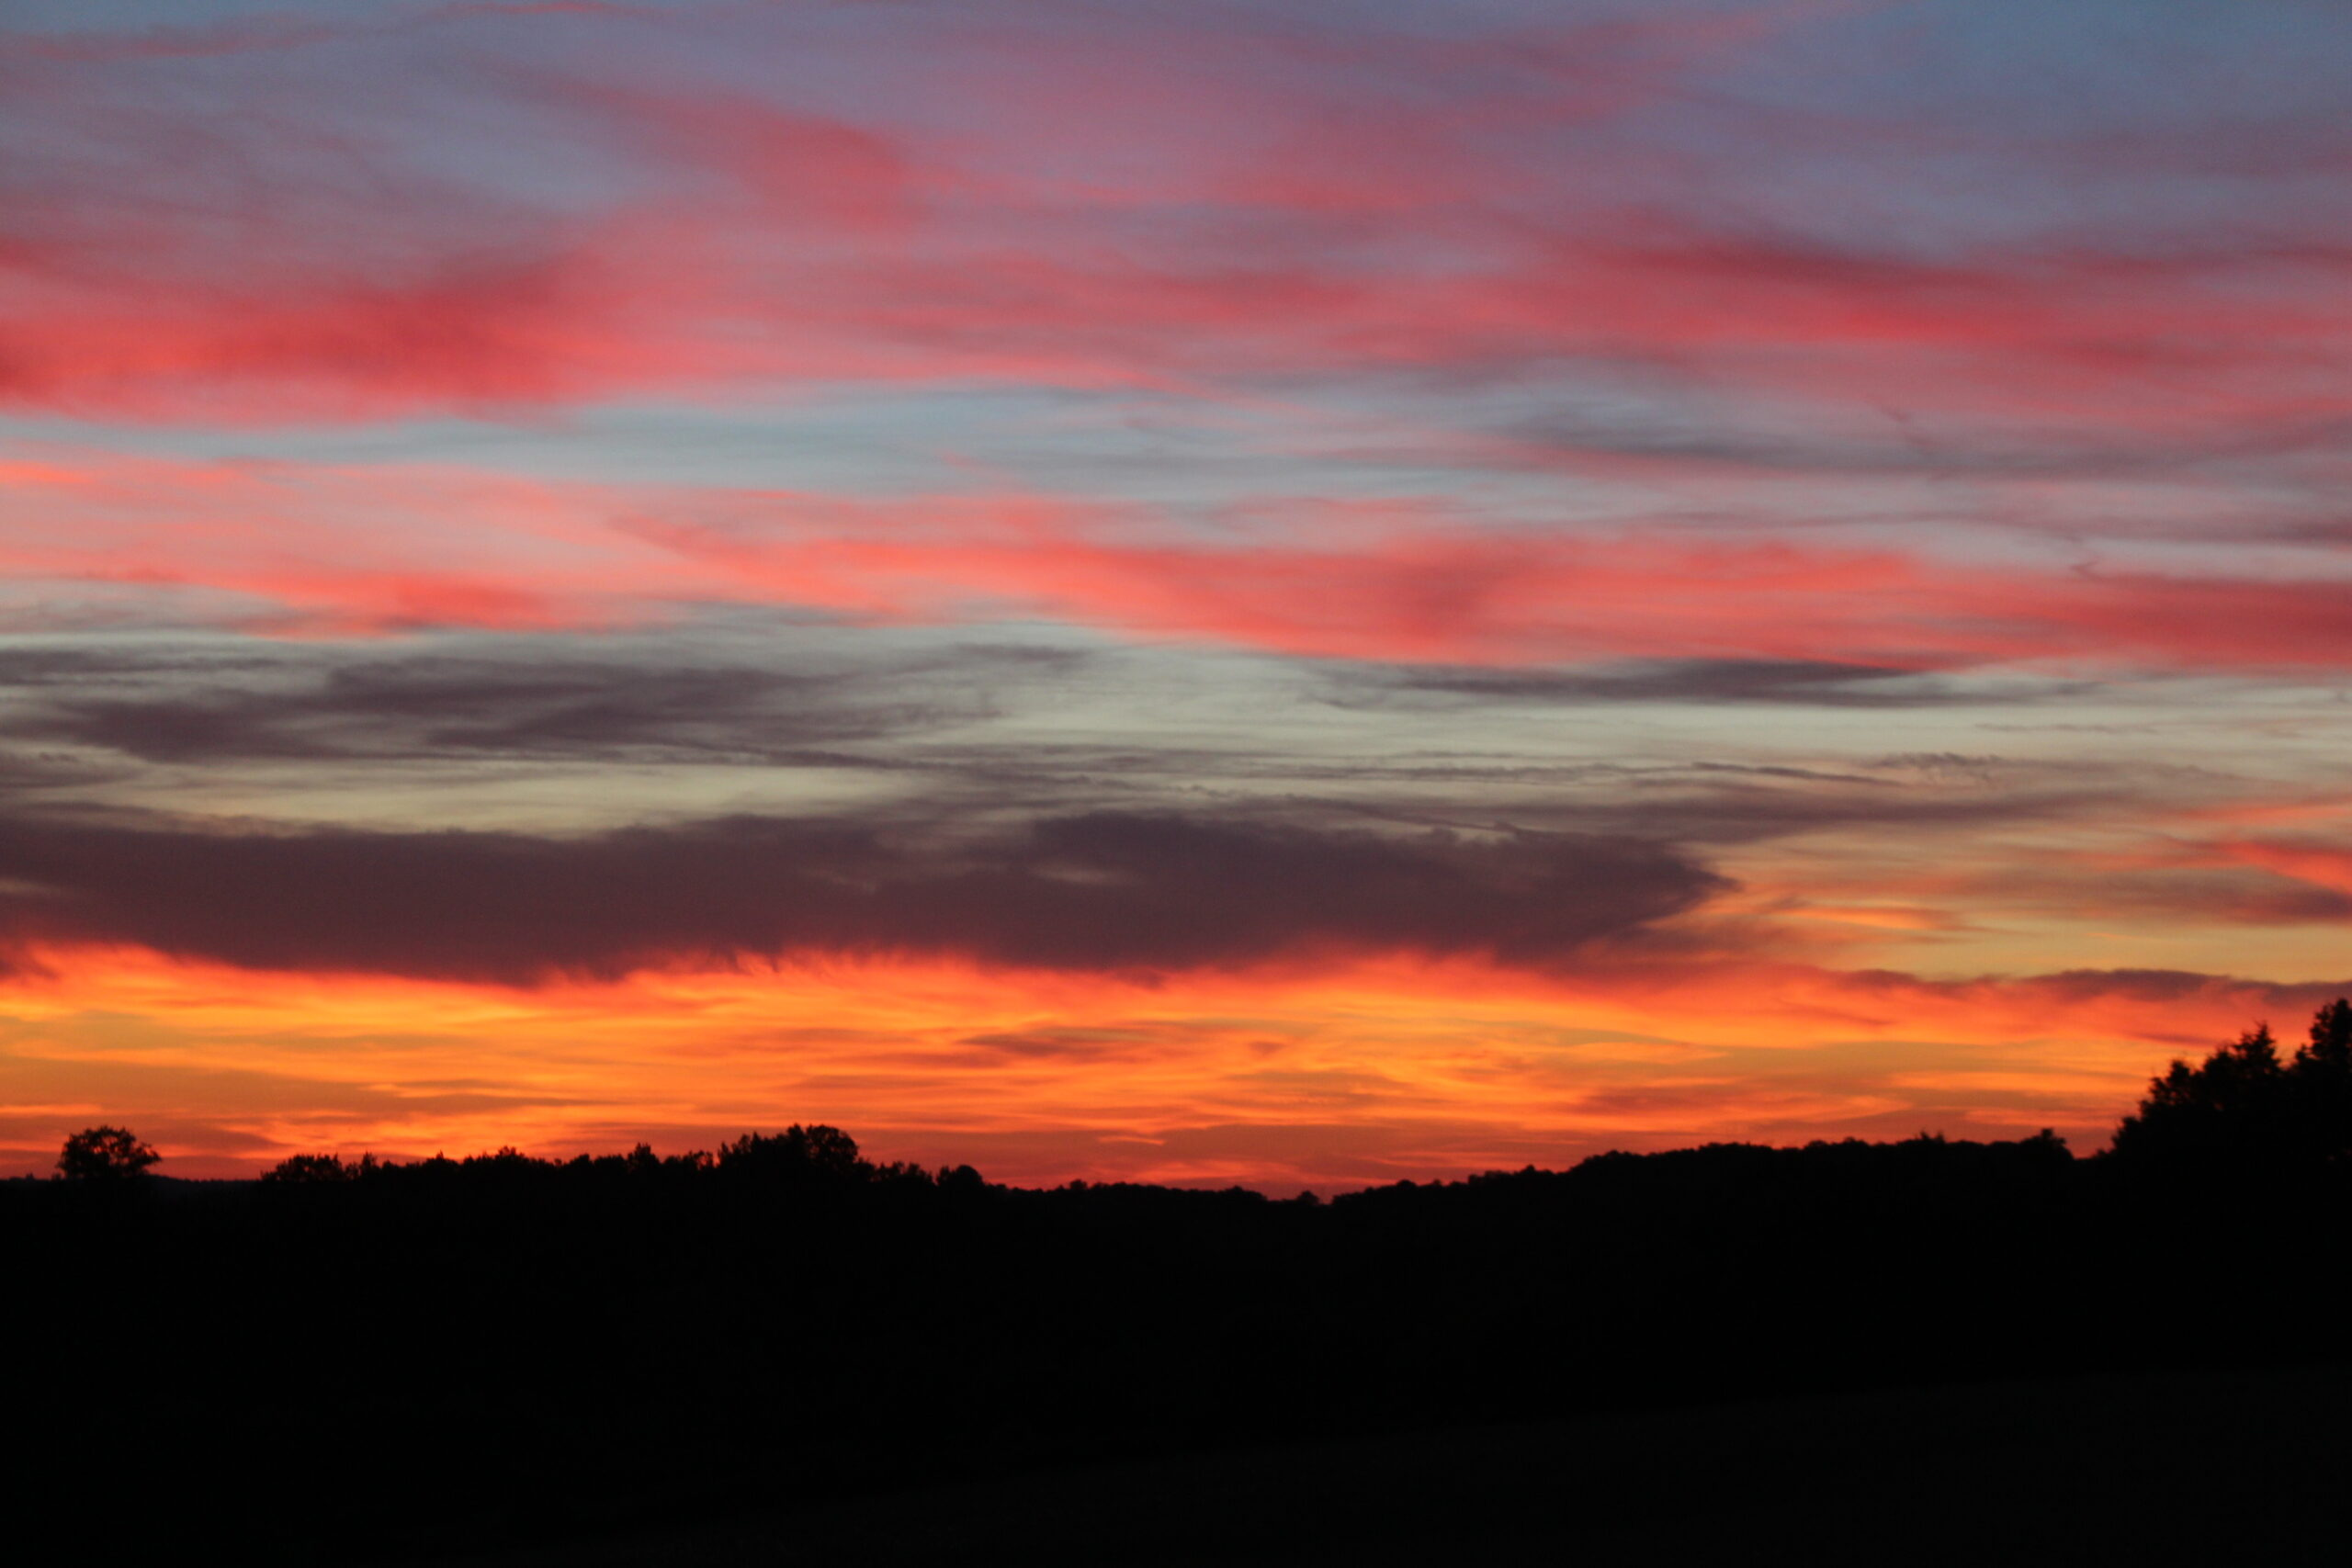 A sunset at Le Mas & Le Mazet, holiday accommodation in a rural setting in the Dordogne